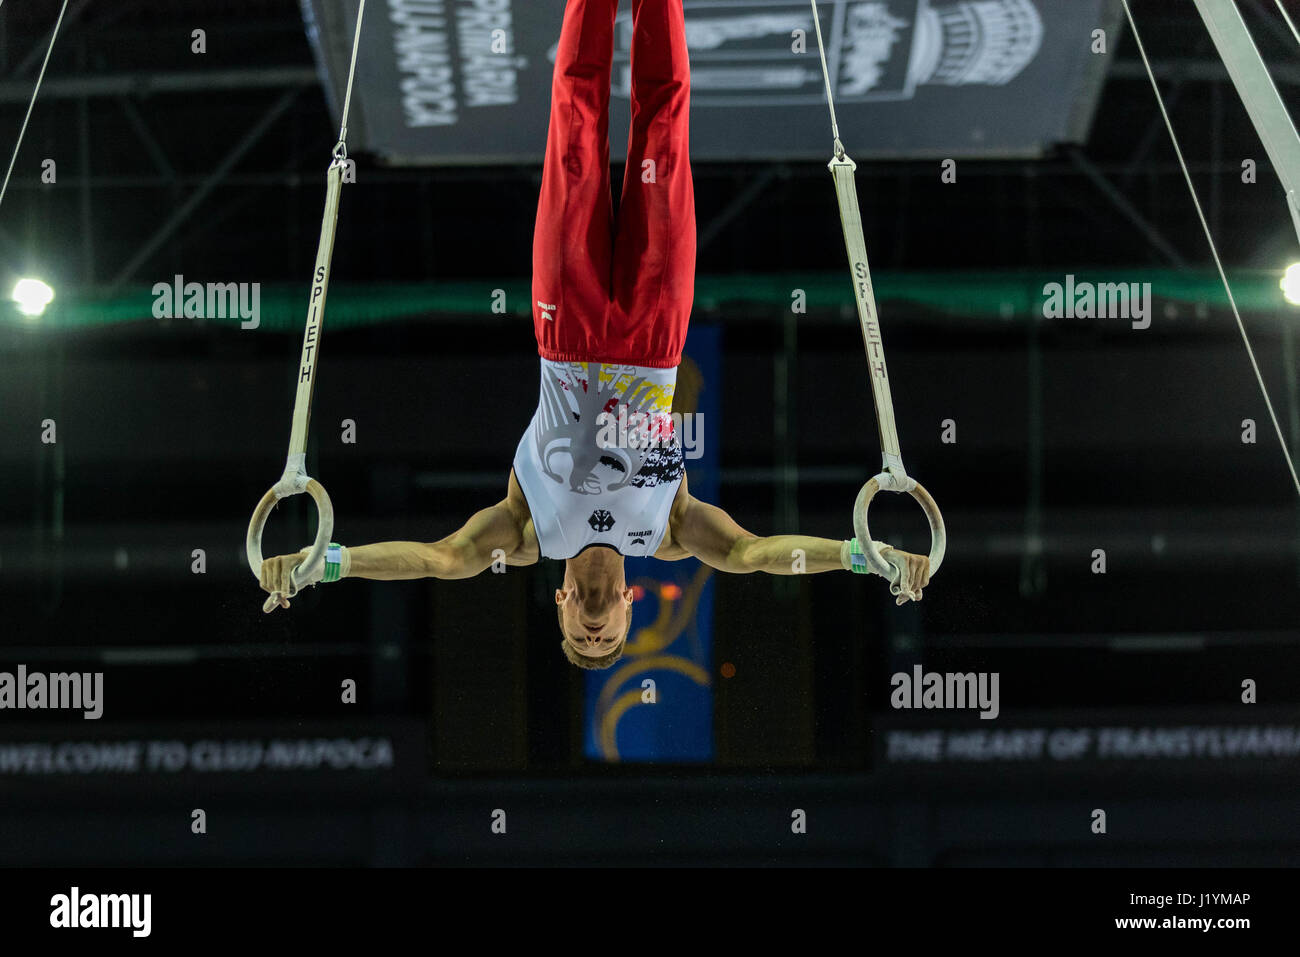 Cluj Napoca, Romania. 21st Apr, 2017. Philipp Herder from Germany performs at the rings at the UEG European Championships Stock Photo